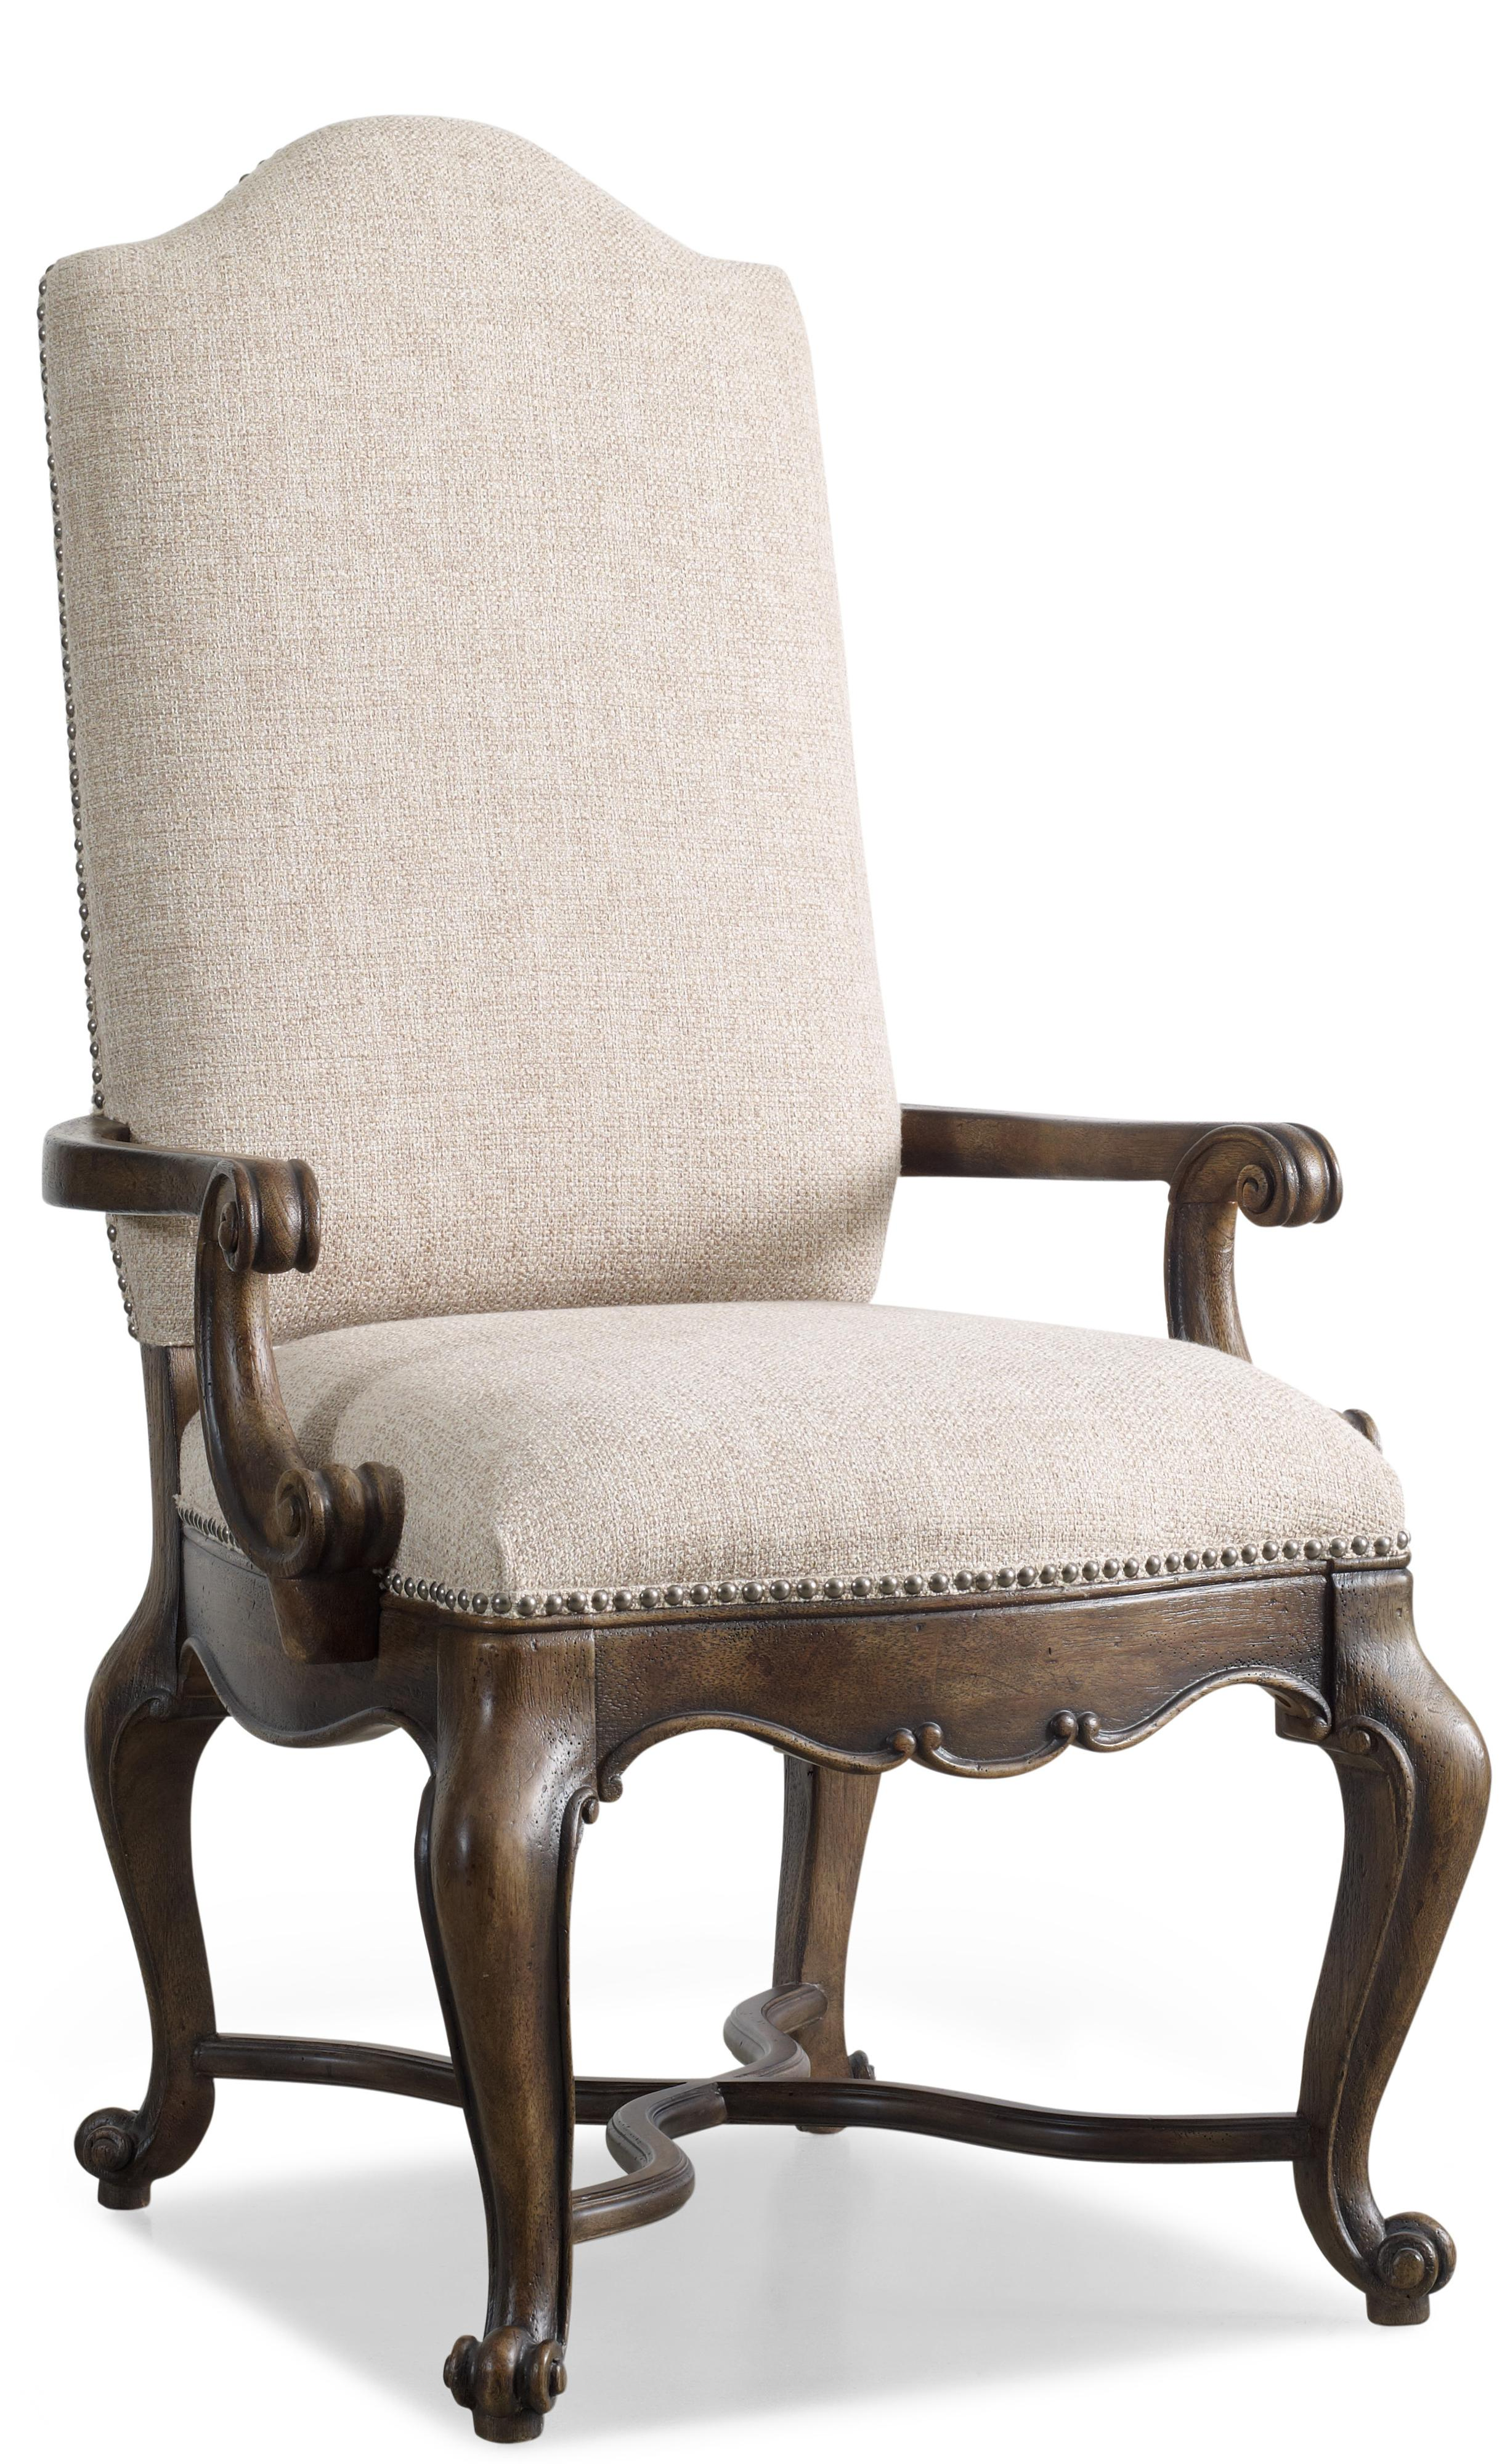 Rhapsody Upholstered Arm Chair by Hooker Furniture at Alison Craig Home Furnishings